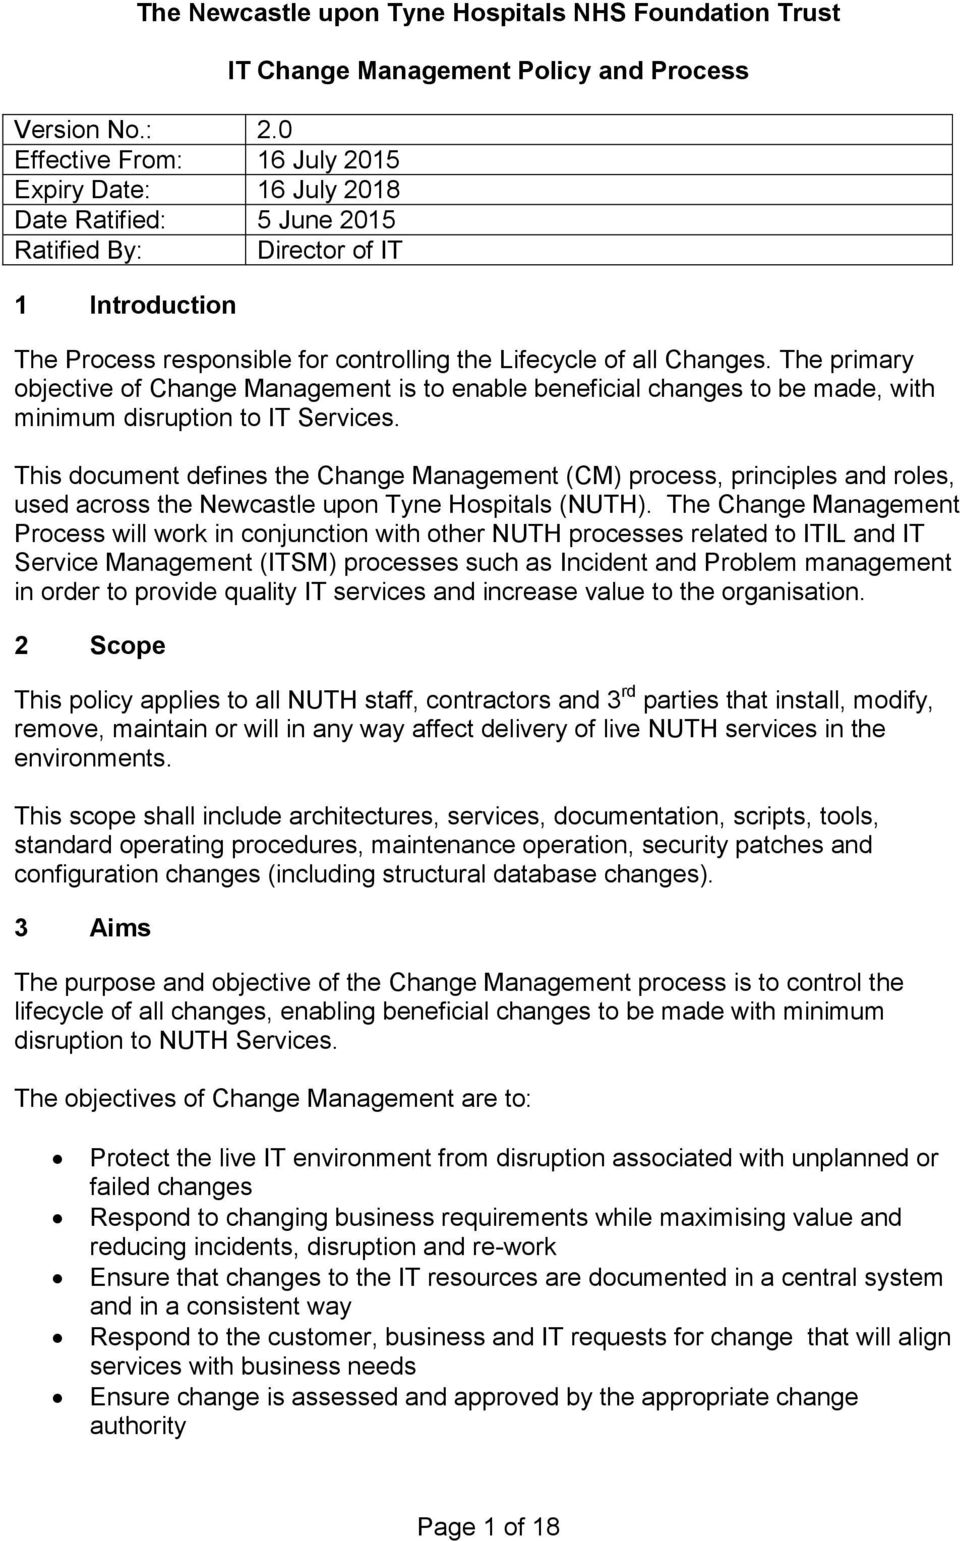 controlling the Lifecycle of all Changes. The primary objective of Change Management is to enable beneficial changes to be made, with minimum disruption to IT Services.